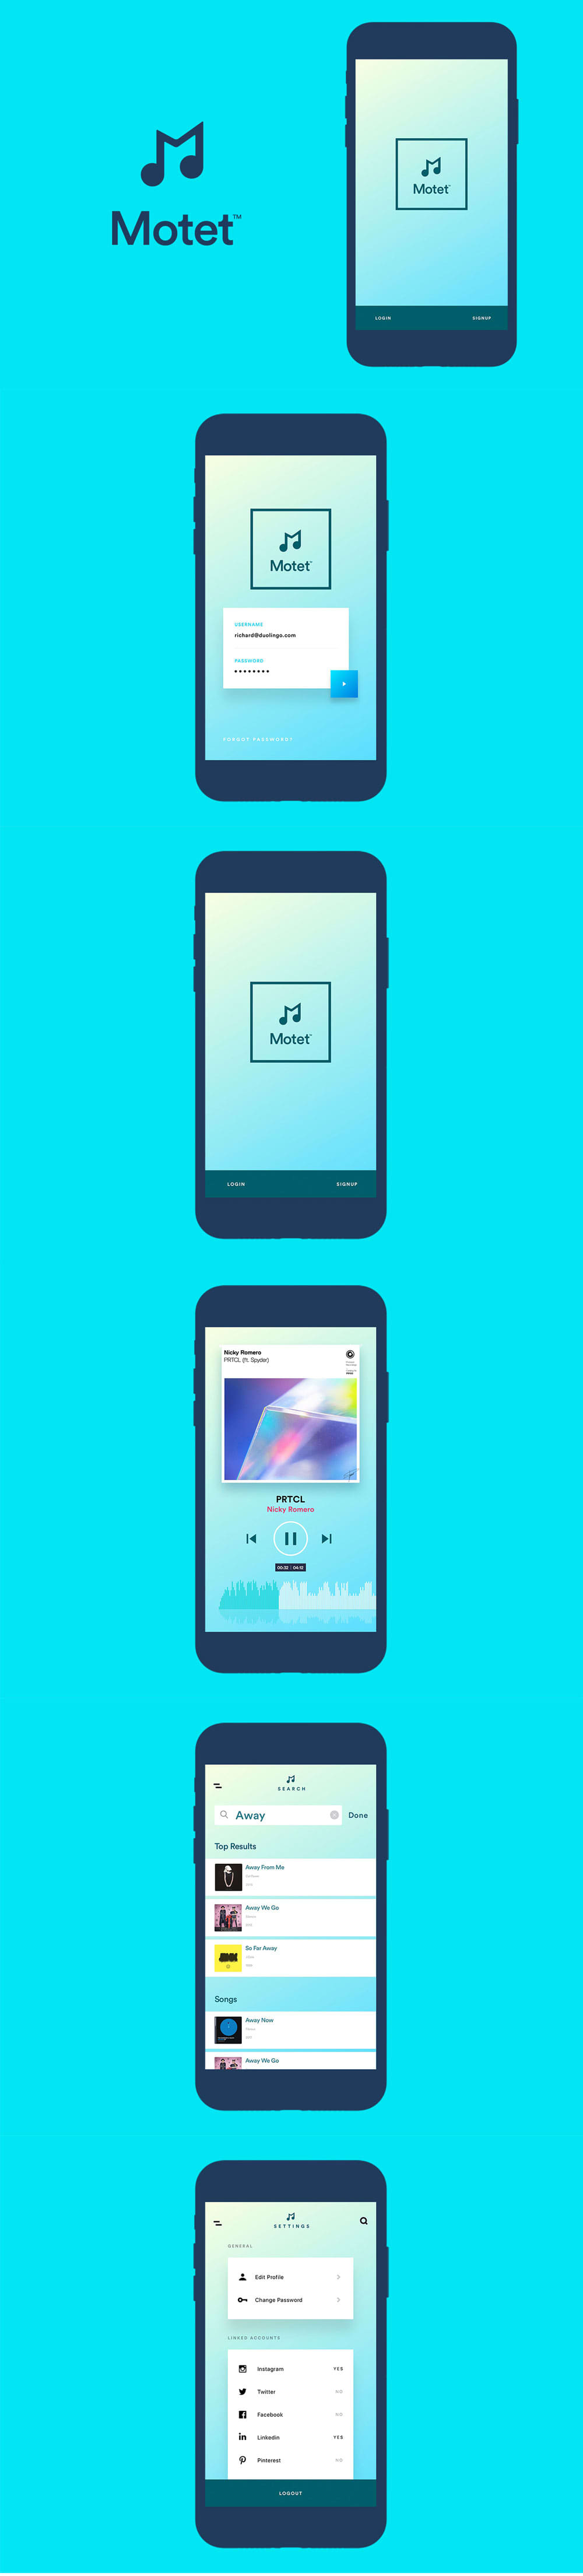 Motet - Music App UI